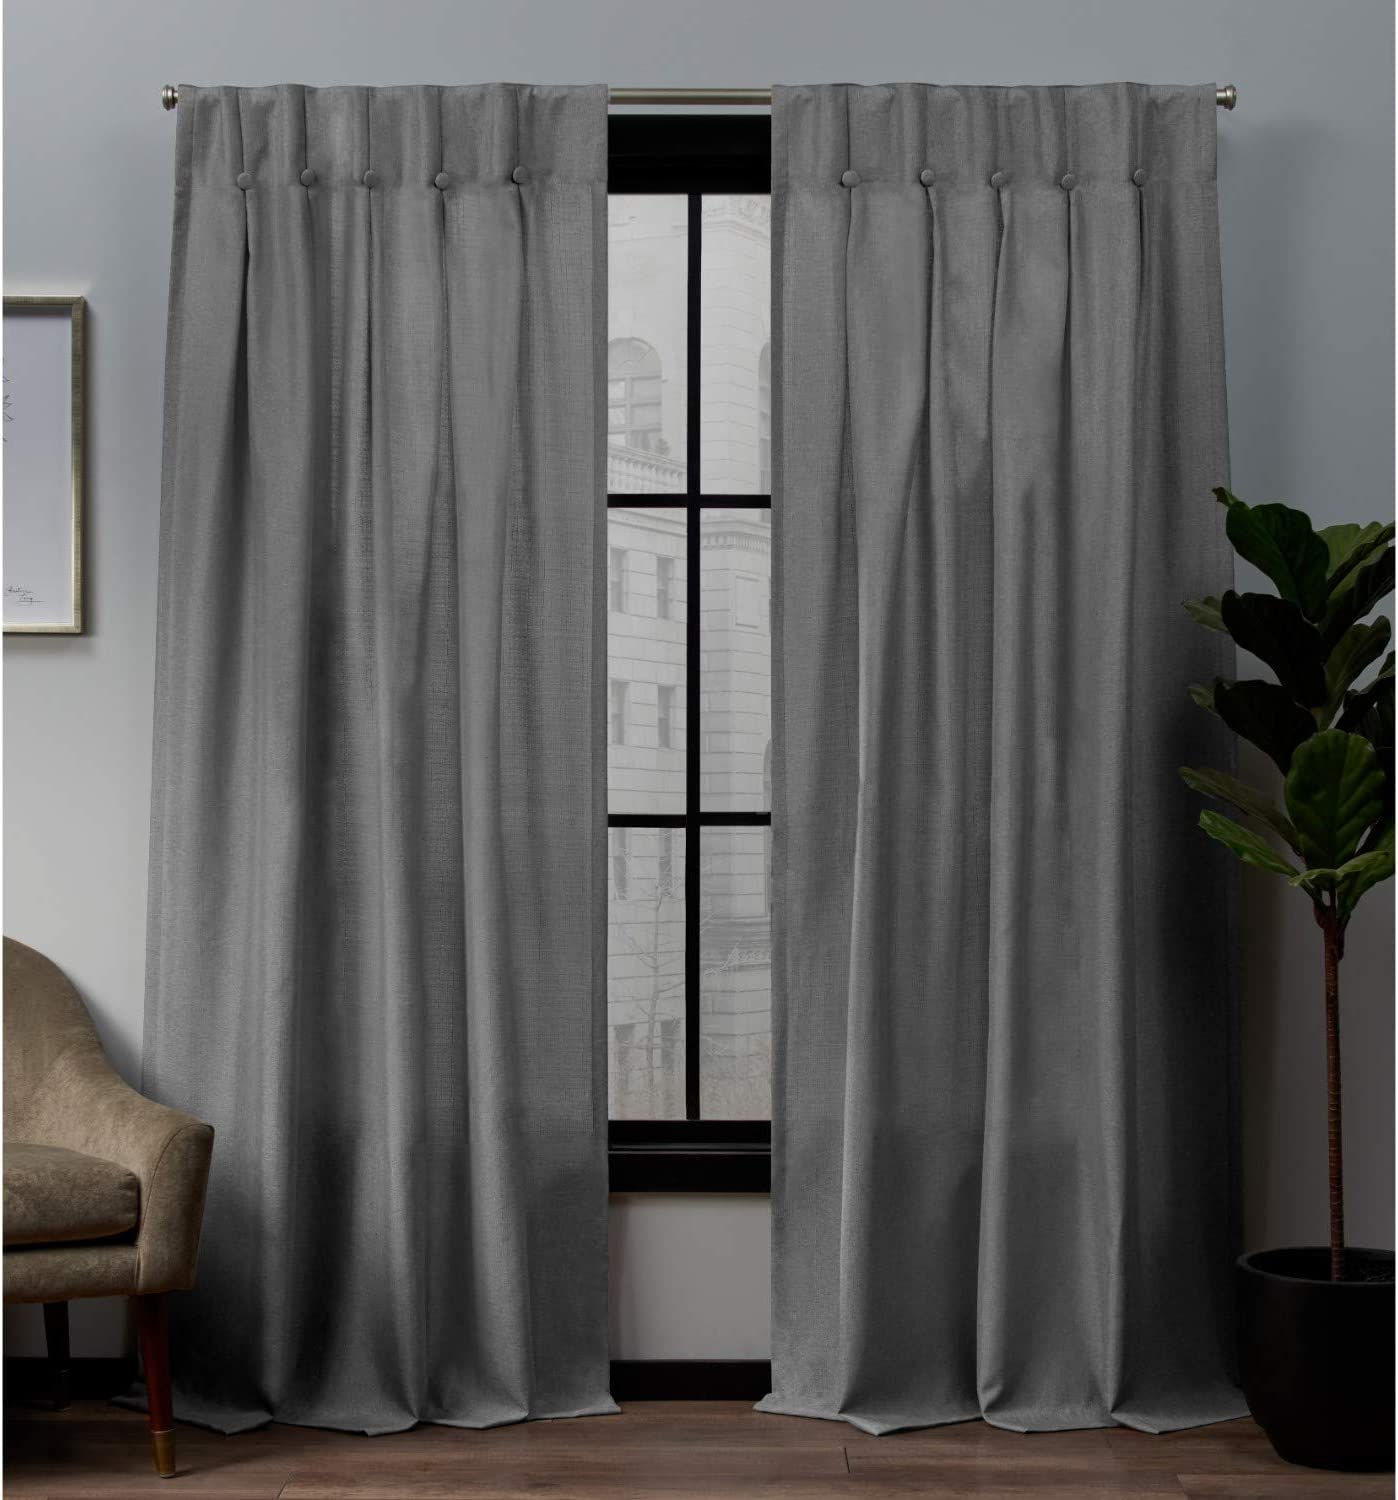 Exclusive Home Curtains Loha Linen Button Top Curtain Panel Pair, 32x84, Black Pearl